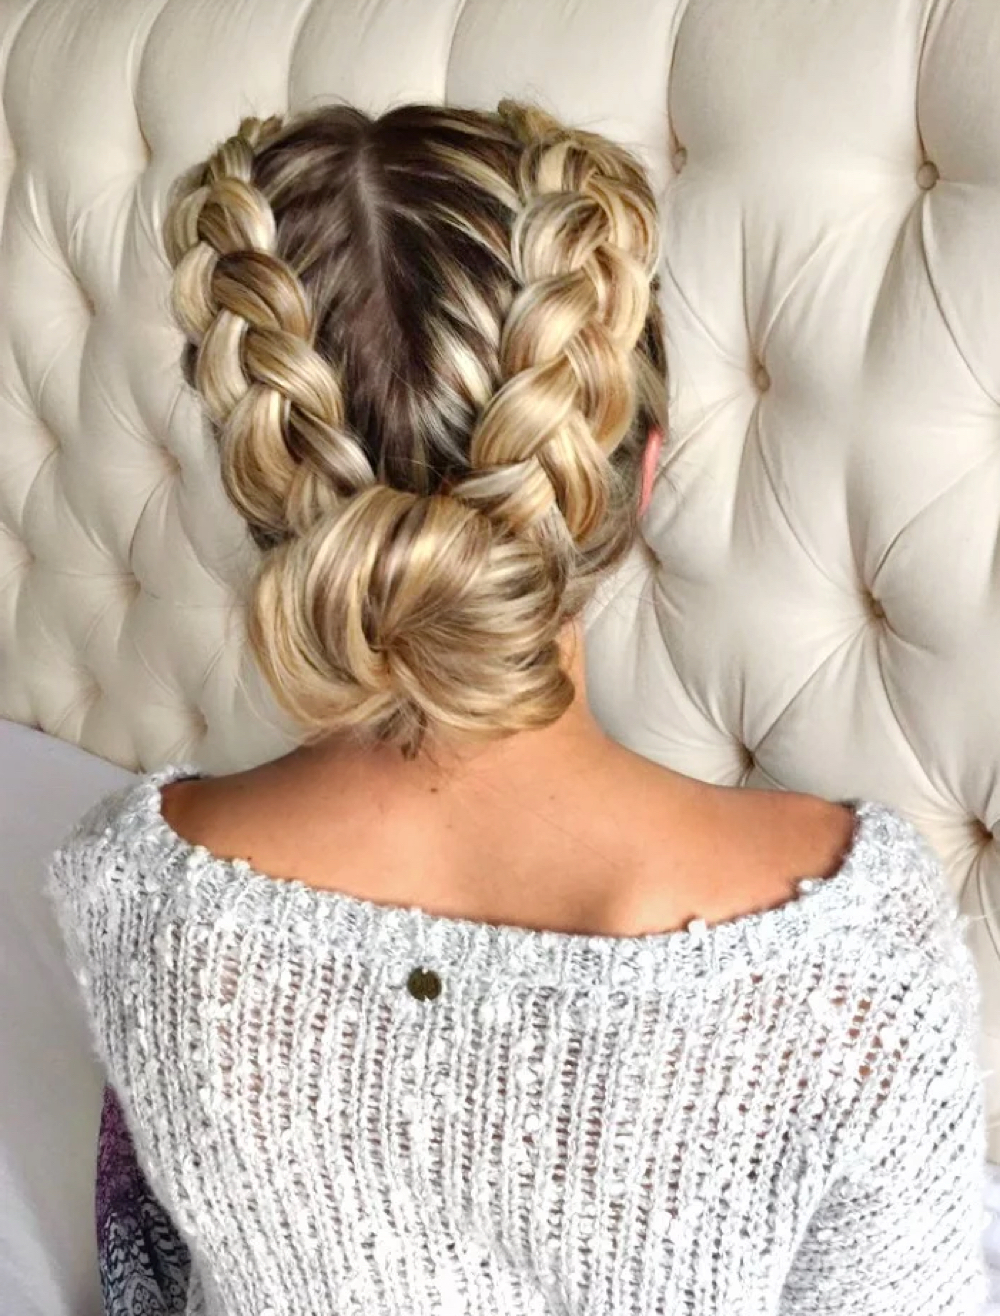 Famous Reverse French Braid Bun Updo Hairstyles For 29 Gorgeous Braided Updo Ideas For (View 6 of 20)